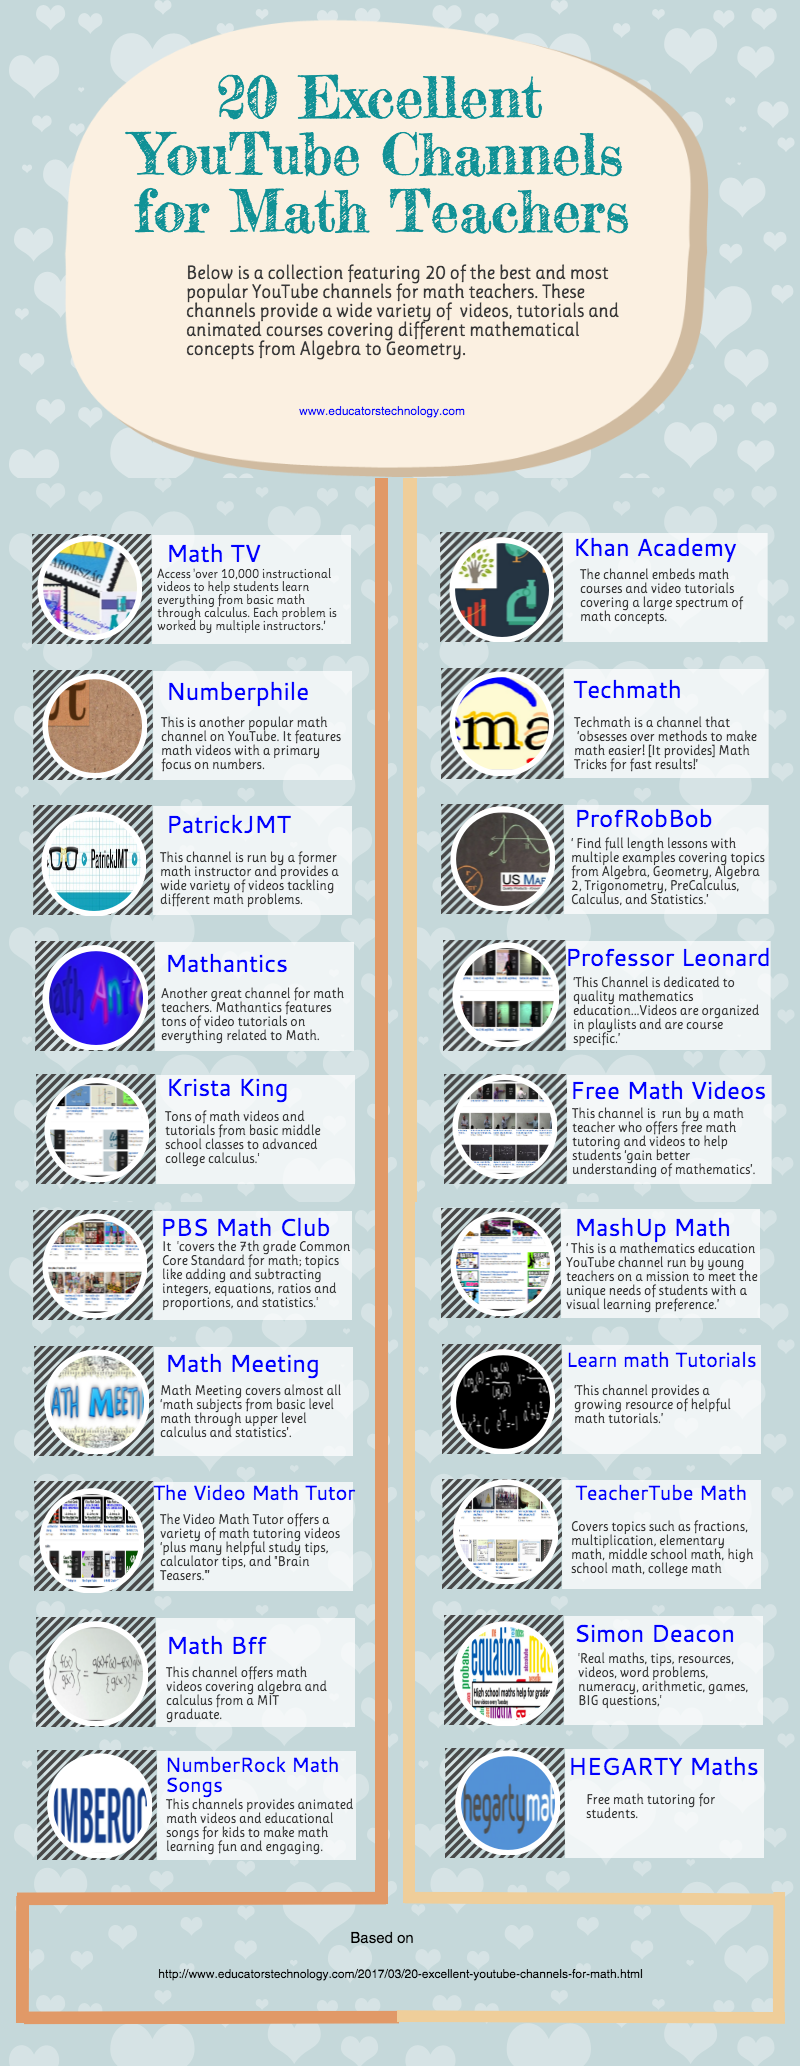 educatorstechnology.com - An Interesting Infographic Featuring 20 of The Best YouTube Channels for Math Teachers